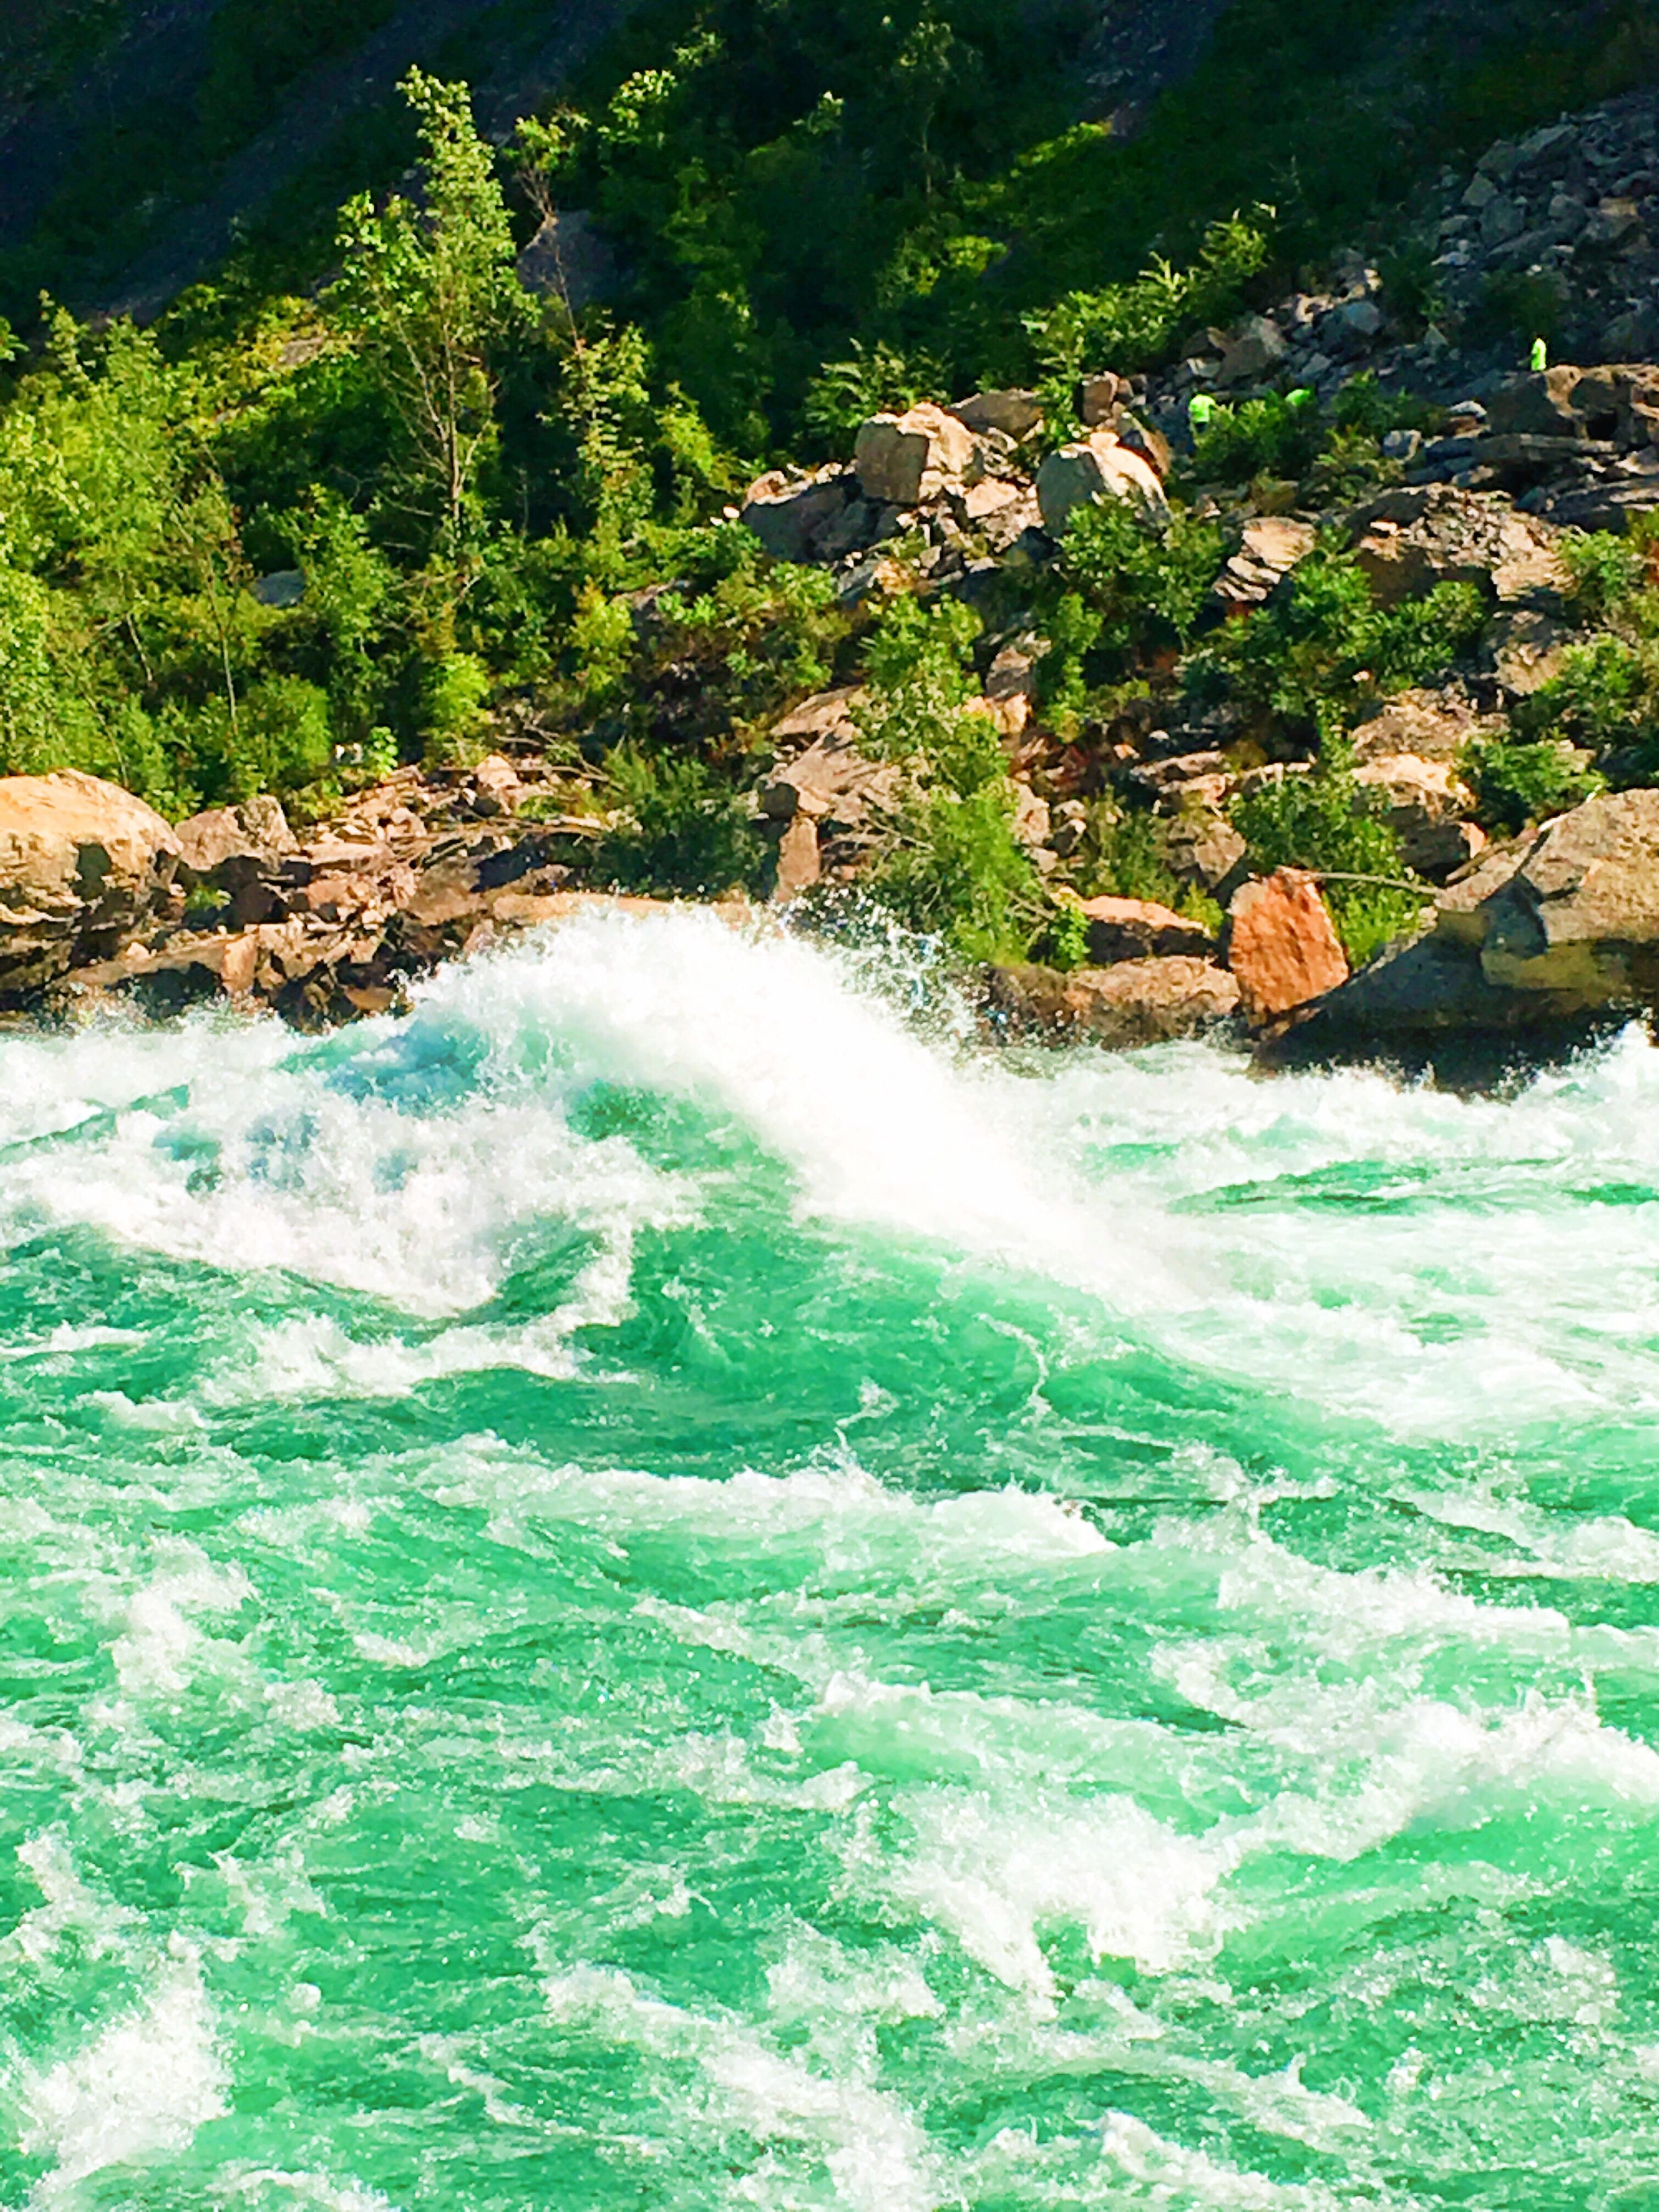 water, waterfront, motion, river, flowing water, rock - object, beauty in nature, flowing, nature, scenics, surf, environment, wave, stream, green color, day, non-urban scene, sea, outdoors, rock formation, tranquil scene, remote, natural landmark, power in nature, physical geography, lush foliage, no people